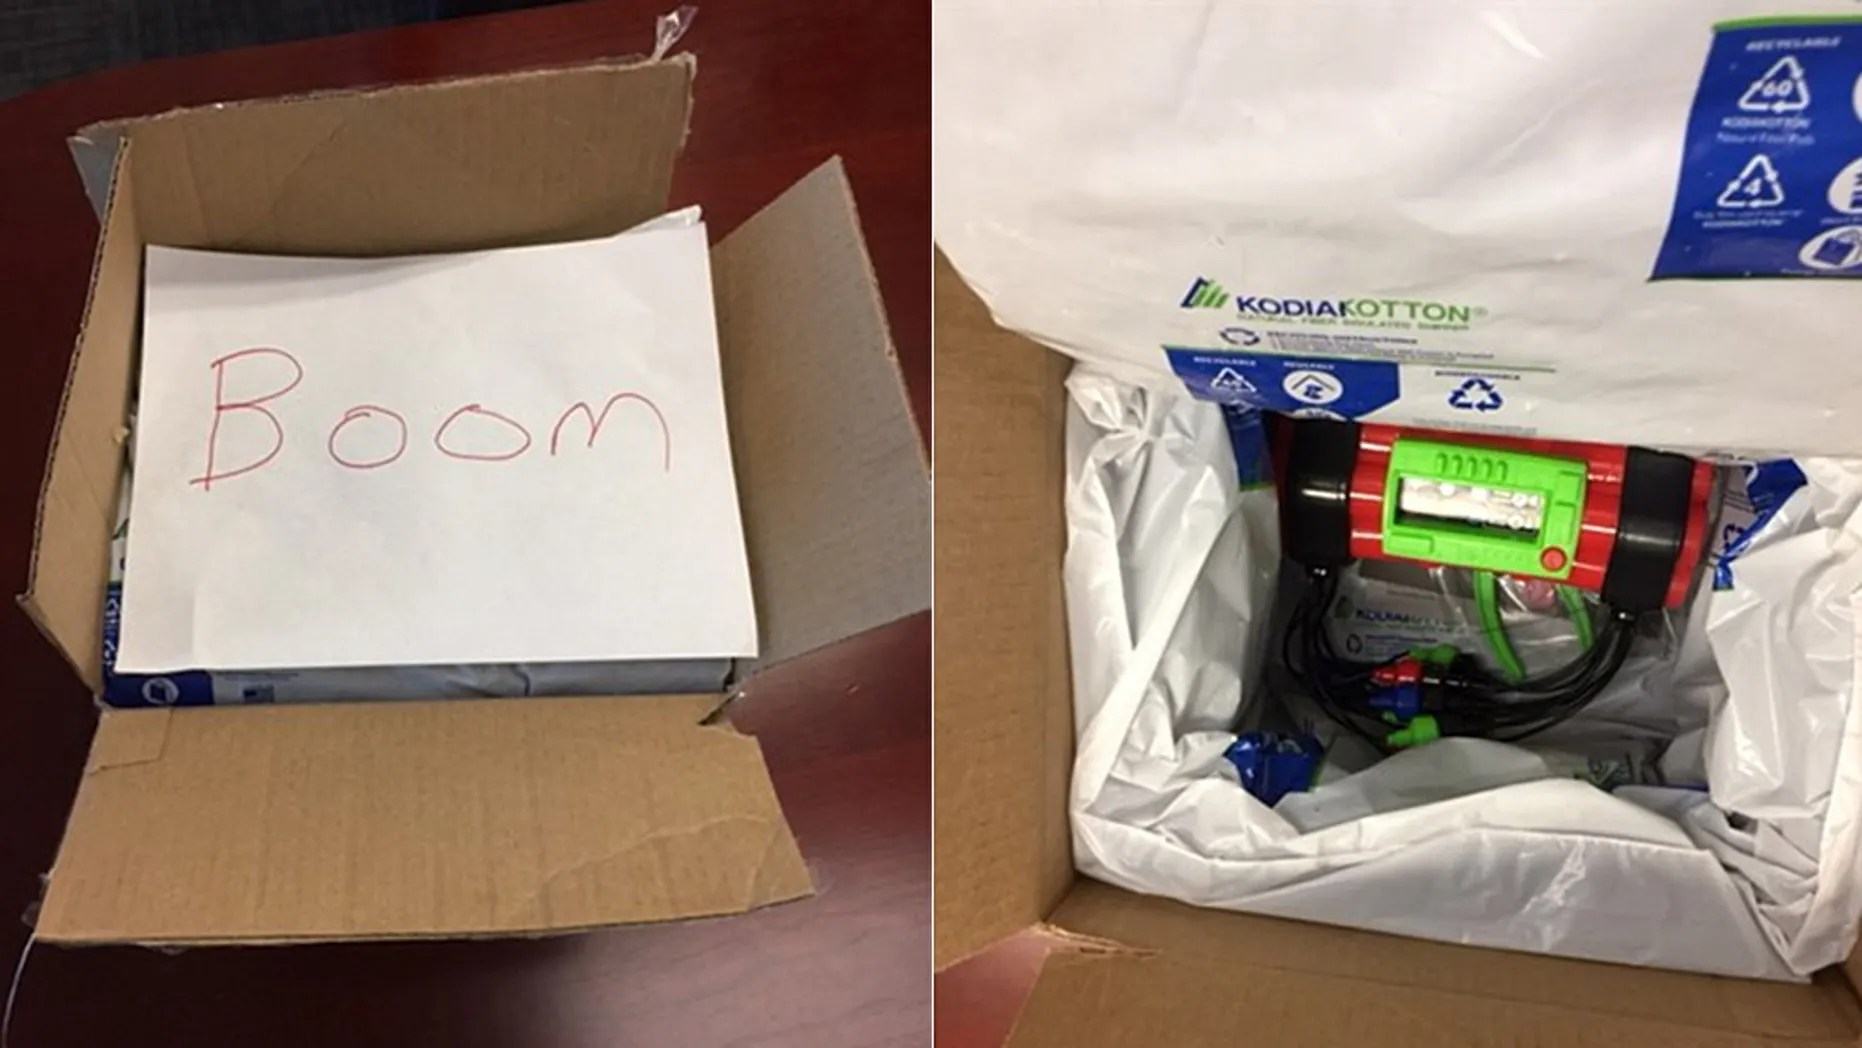 """The toy bomb was insulated with plastic packaging and contained a red cylinder-shaped object with protruding wires, along with a handwritten note with the word """"boom."""""""